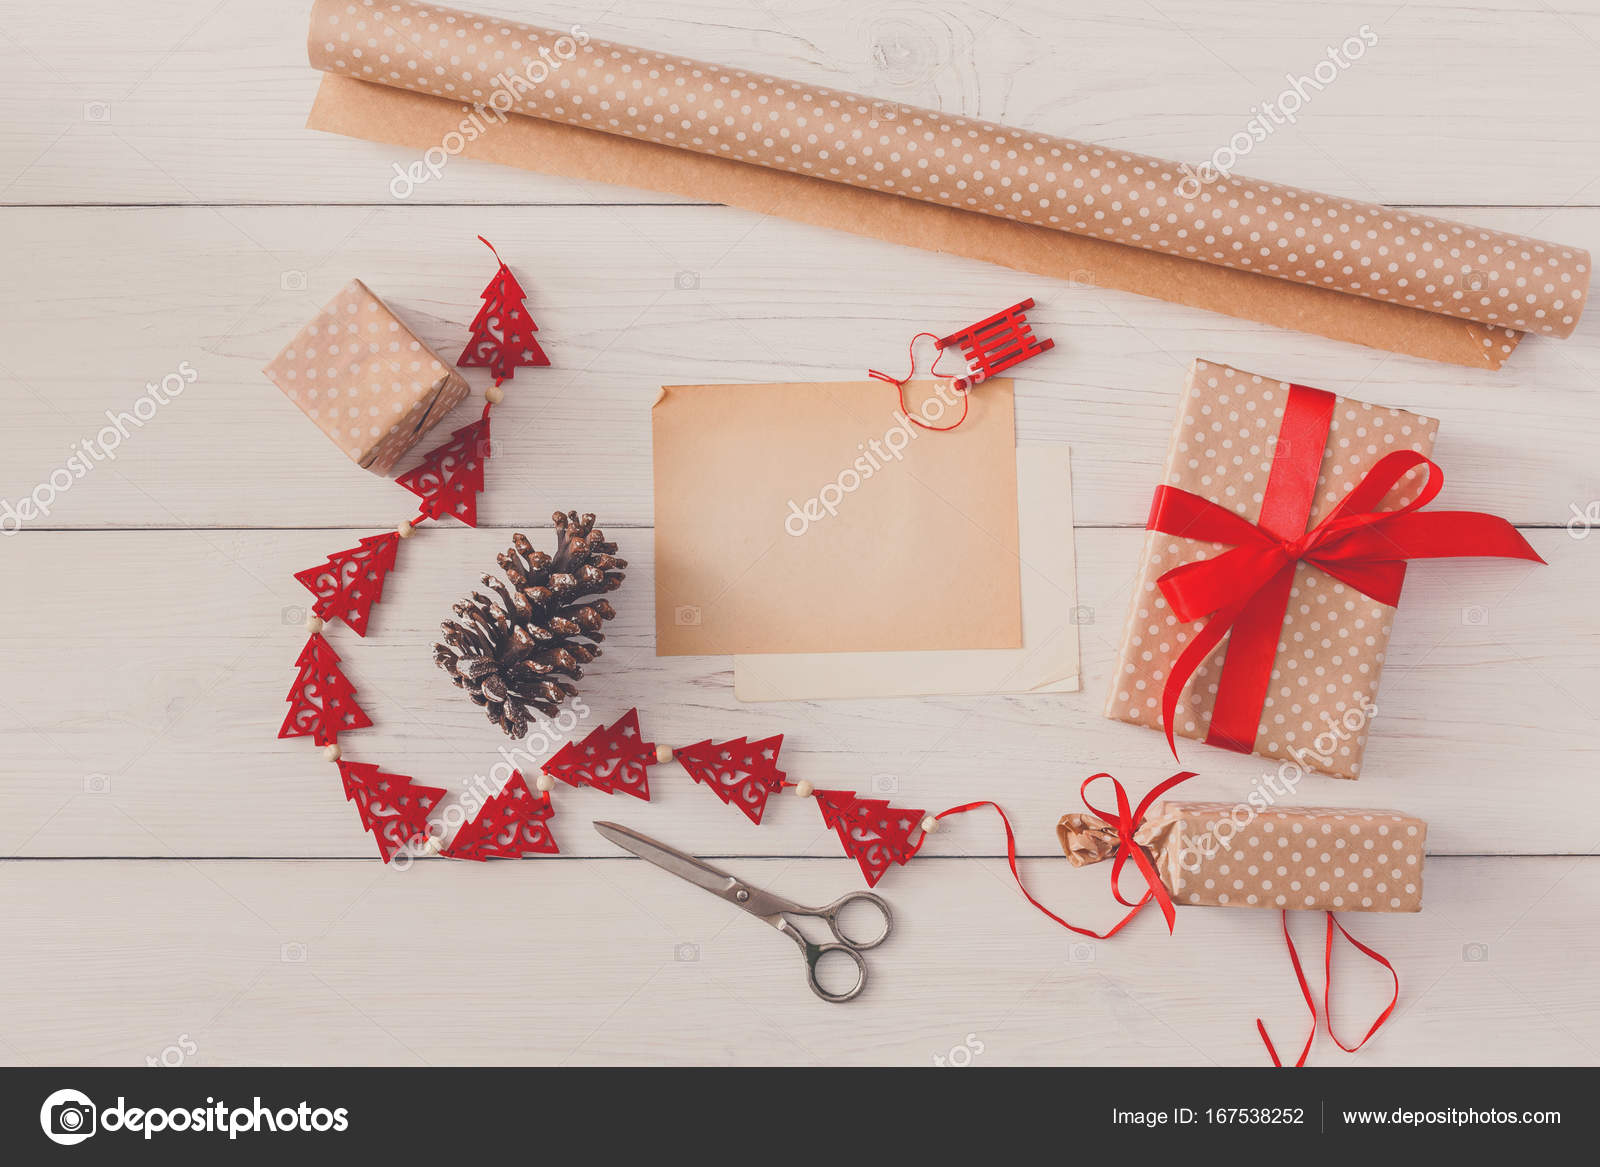 handmade tools for making christmas present box in craft paper with red ribbon top view of white wooden table with copy space on sheet of paper